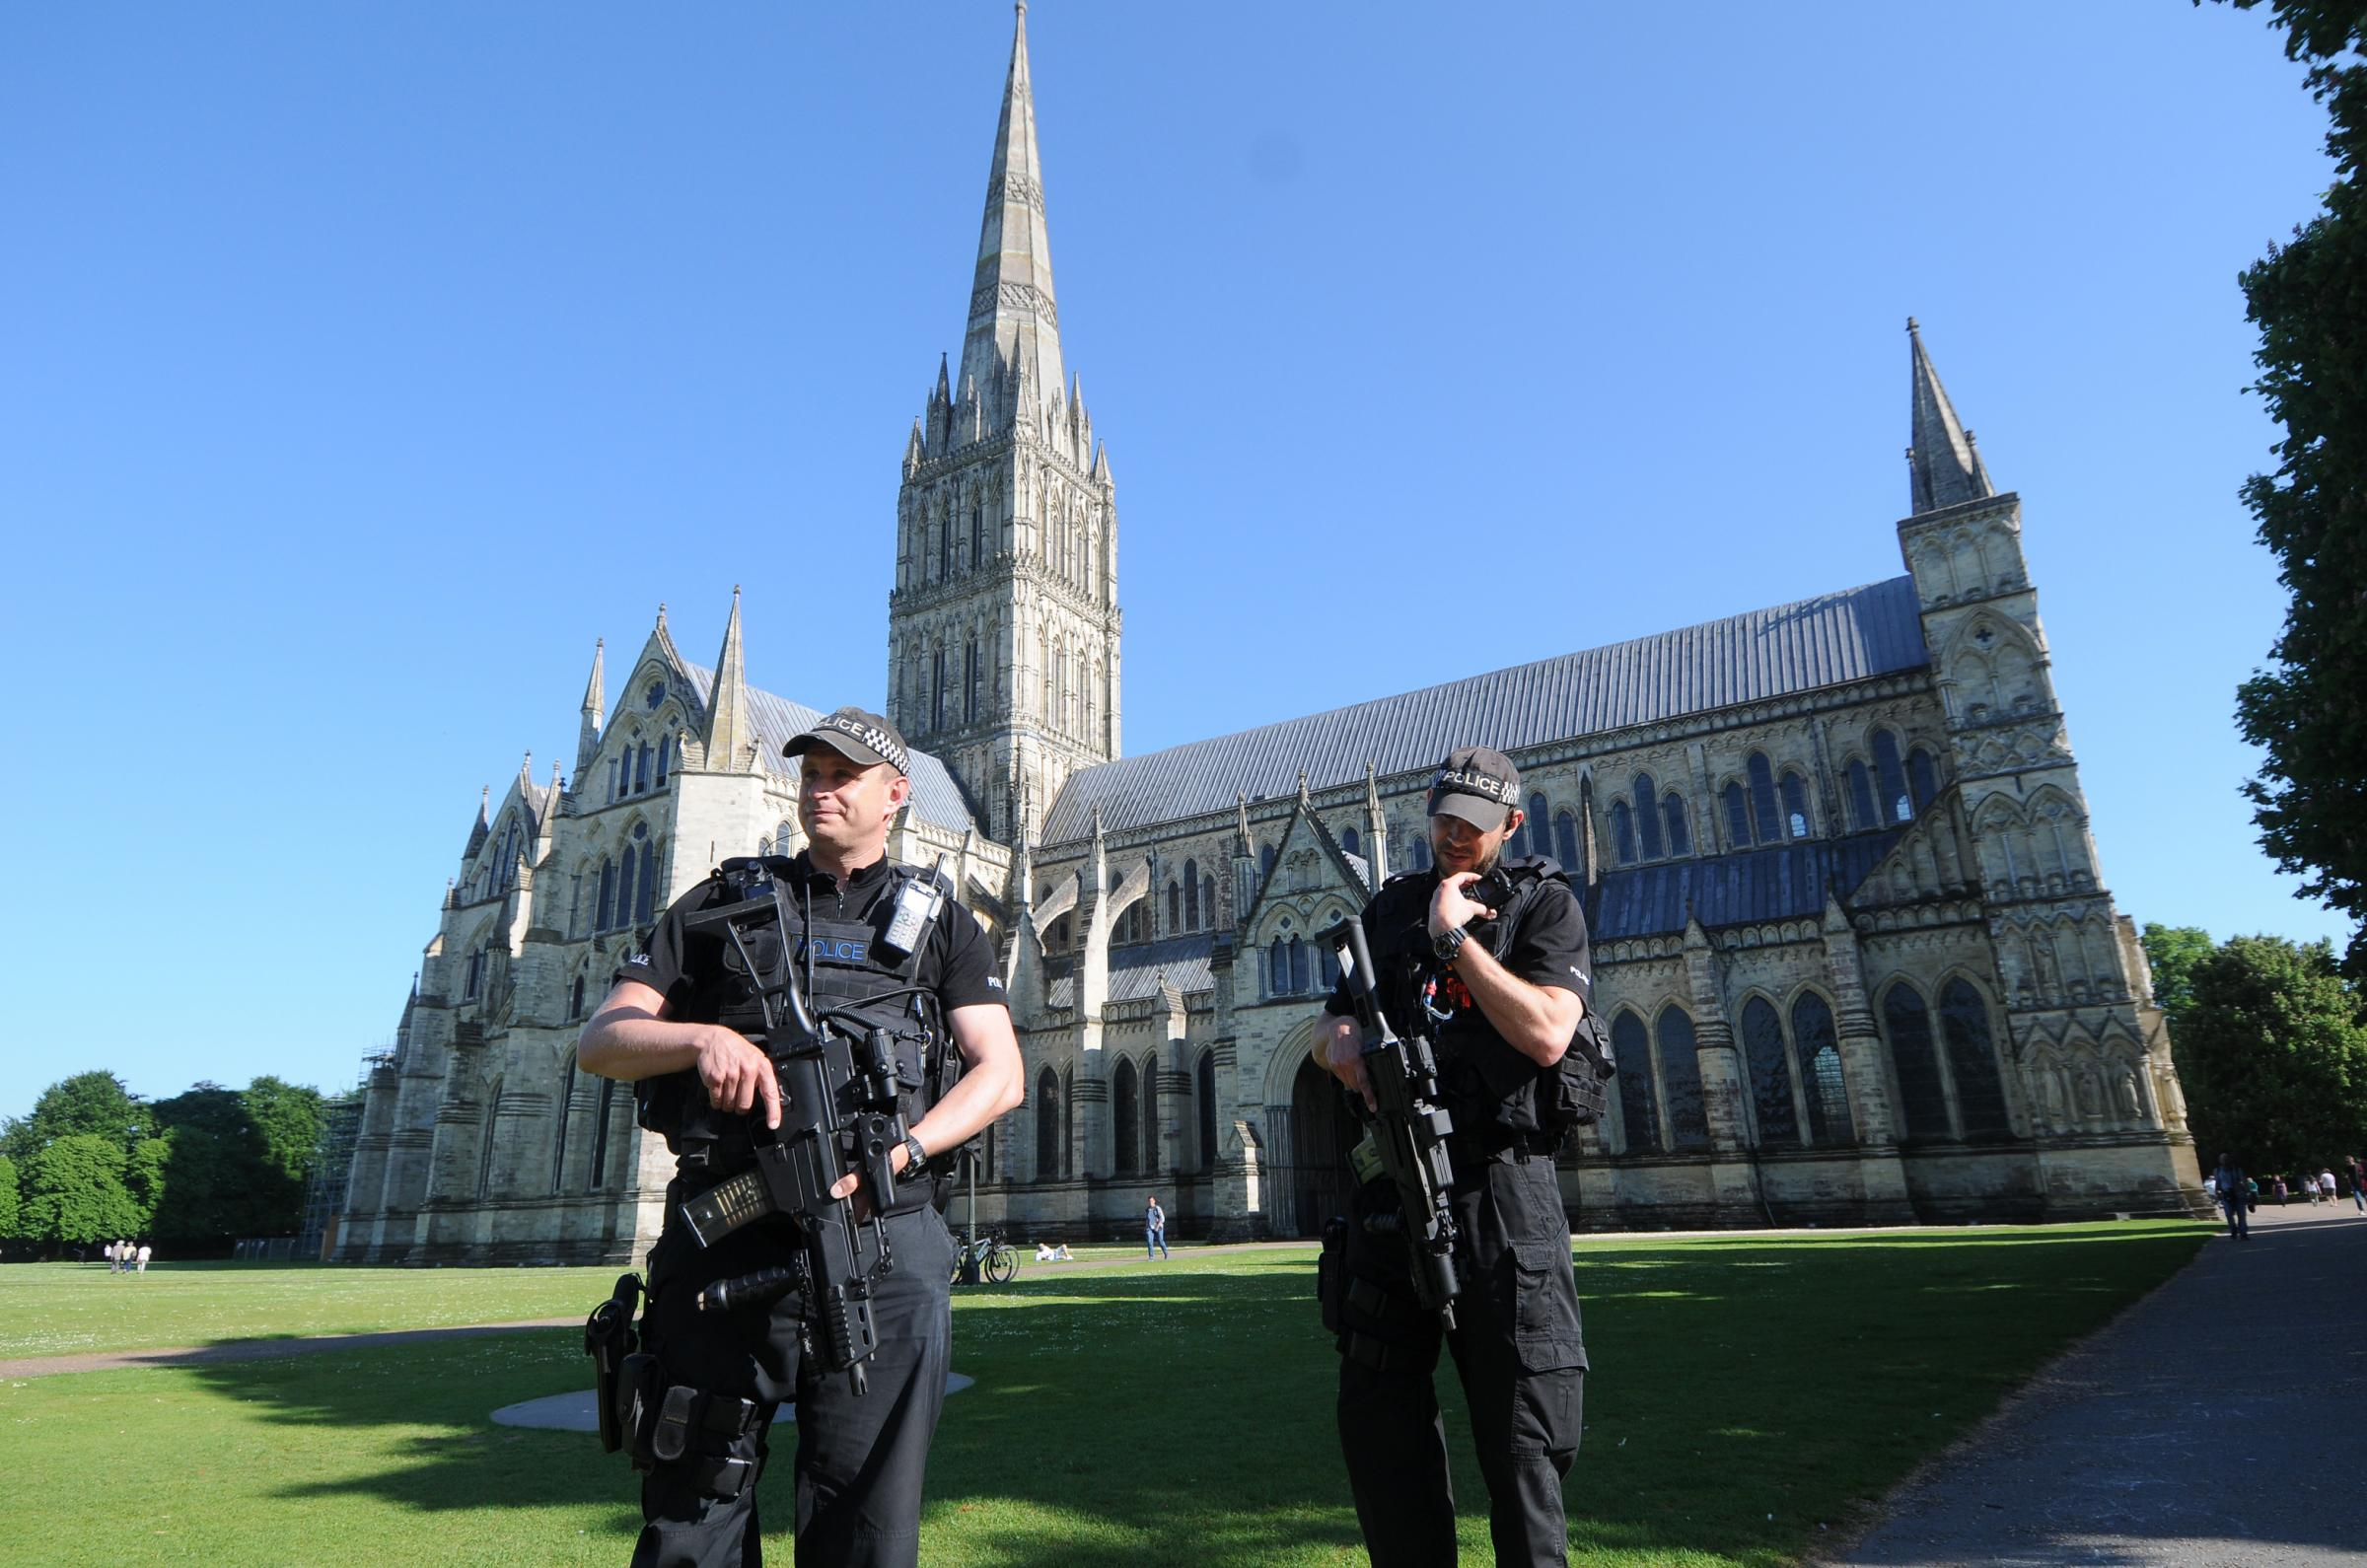 Armed police in Salisbury Cathedral Close. DC8174P8..Picture by Tom Gregory.